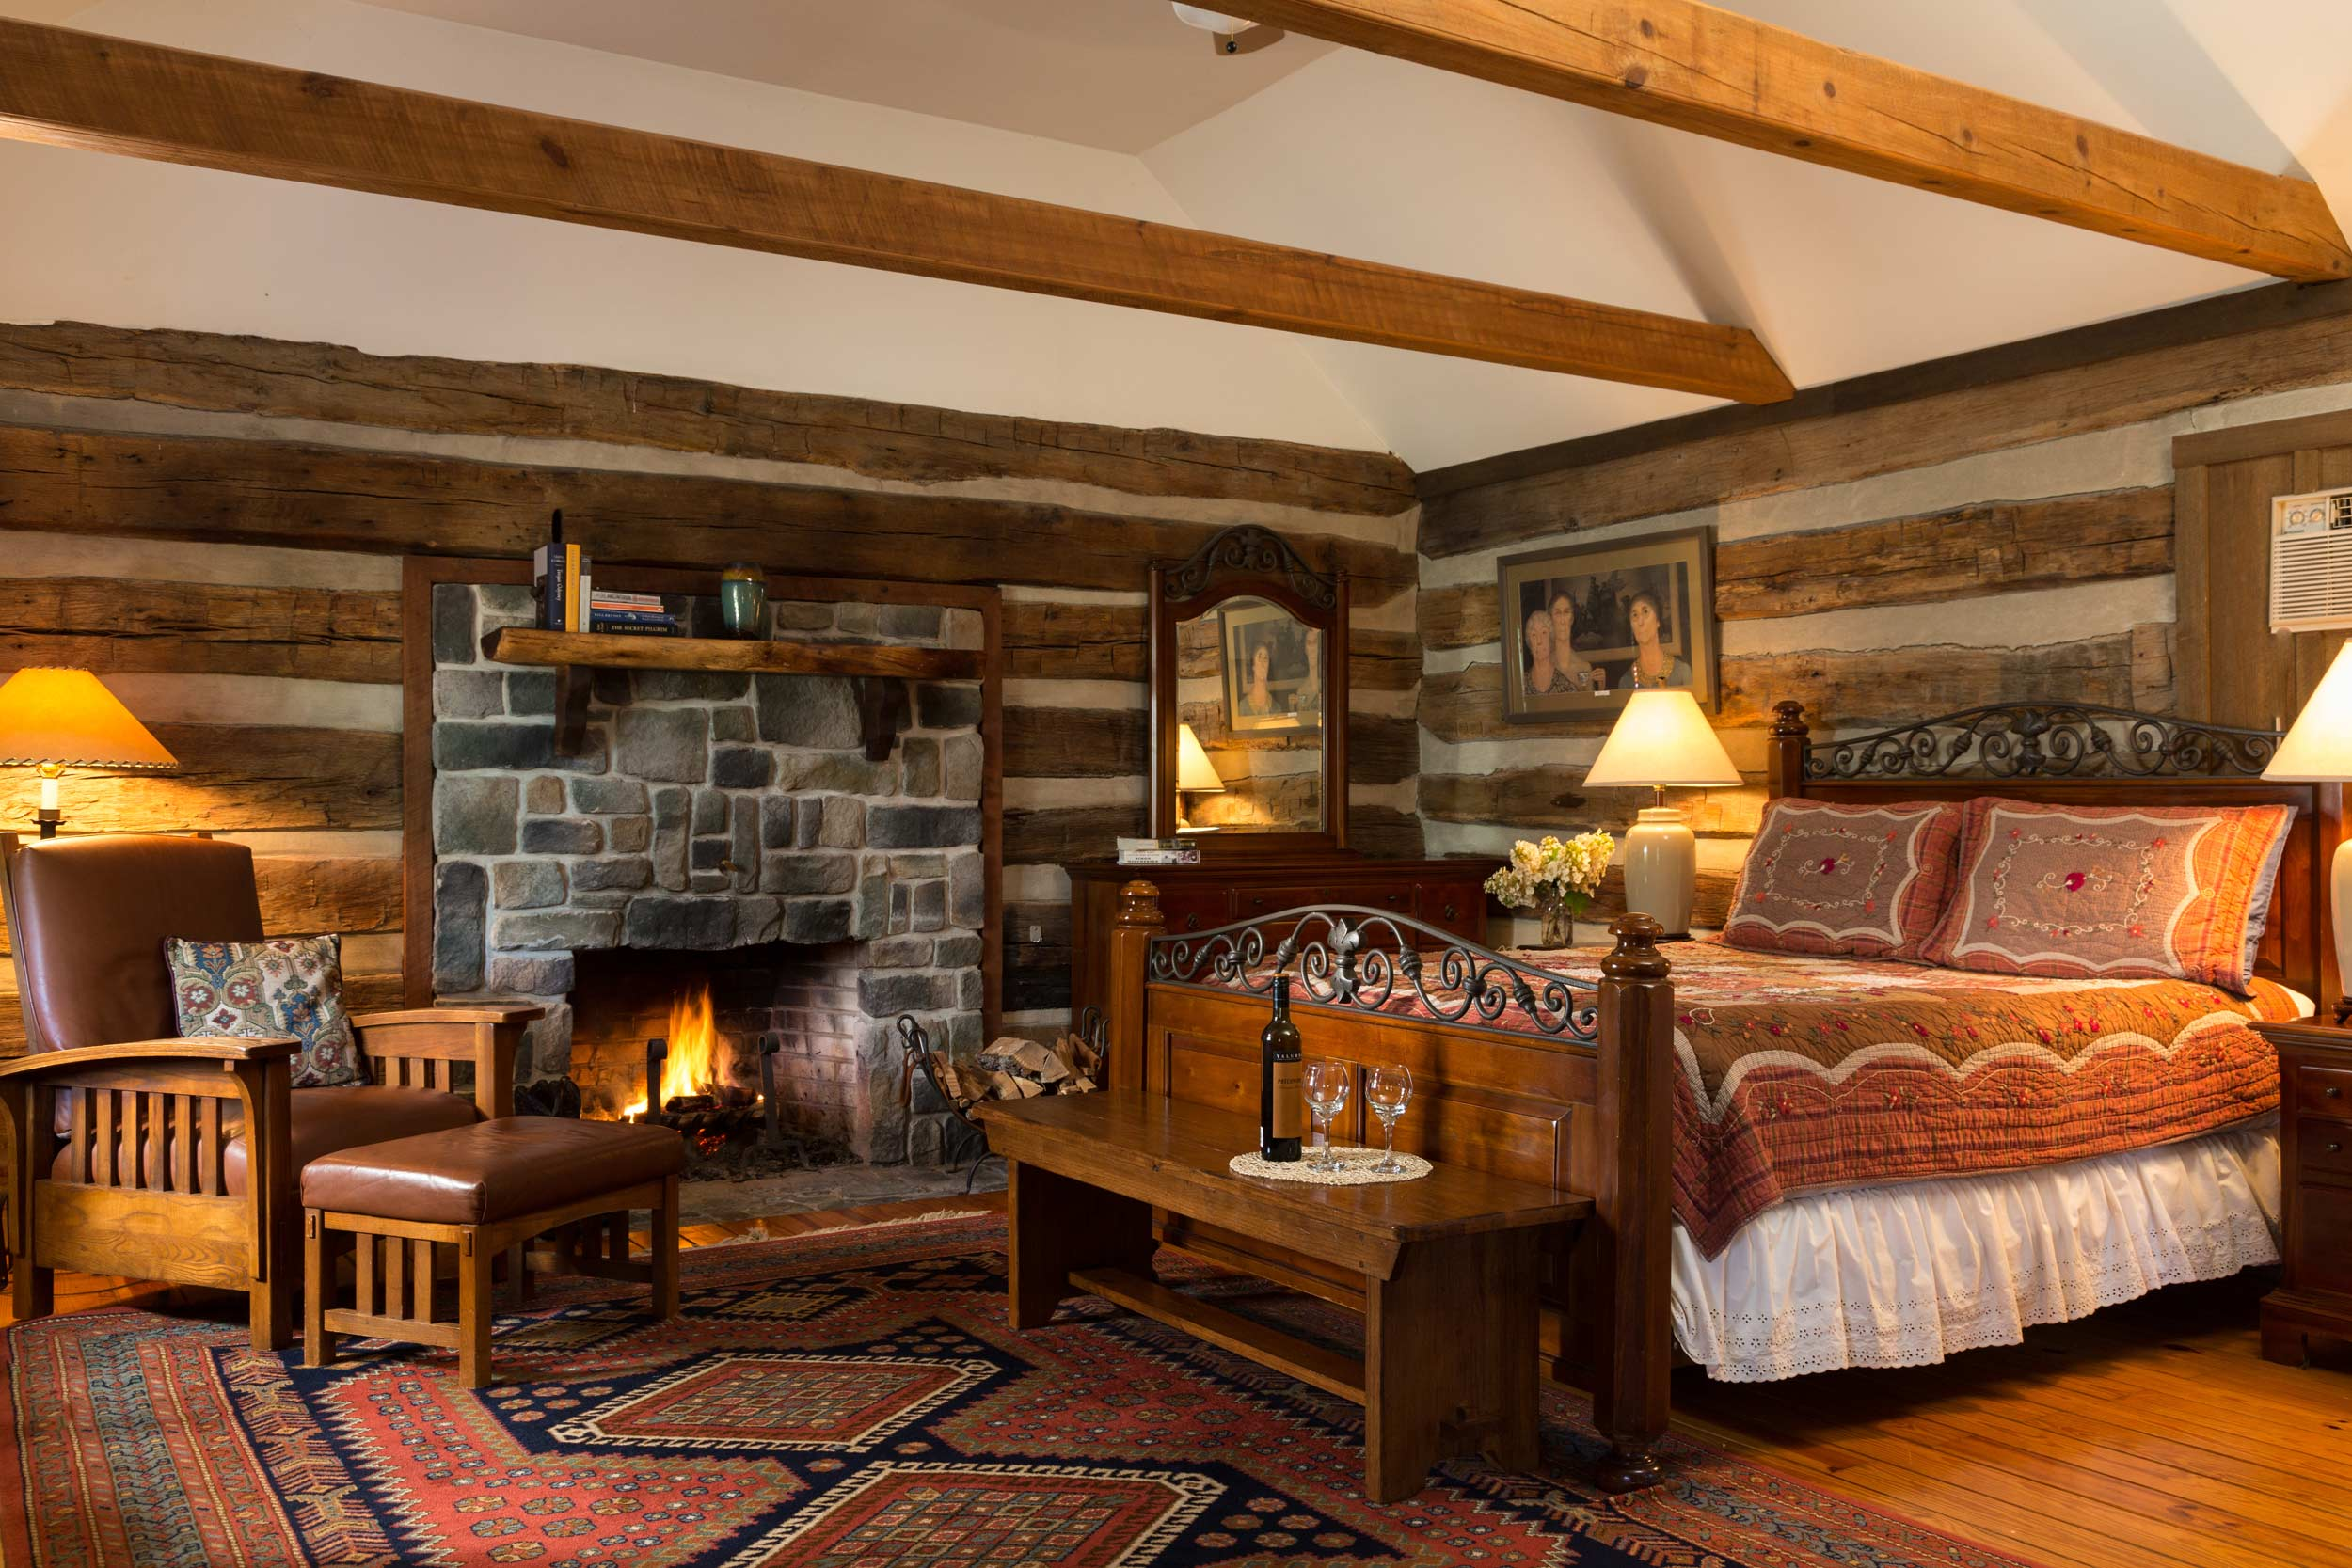 is retreat for mountains placestostay cabins a sweet virginia in mountain asweetmountainretreat lovers listings